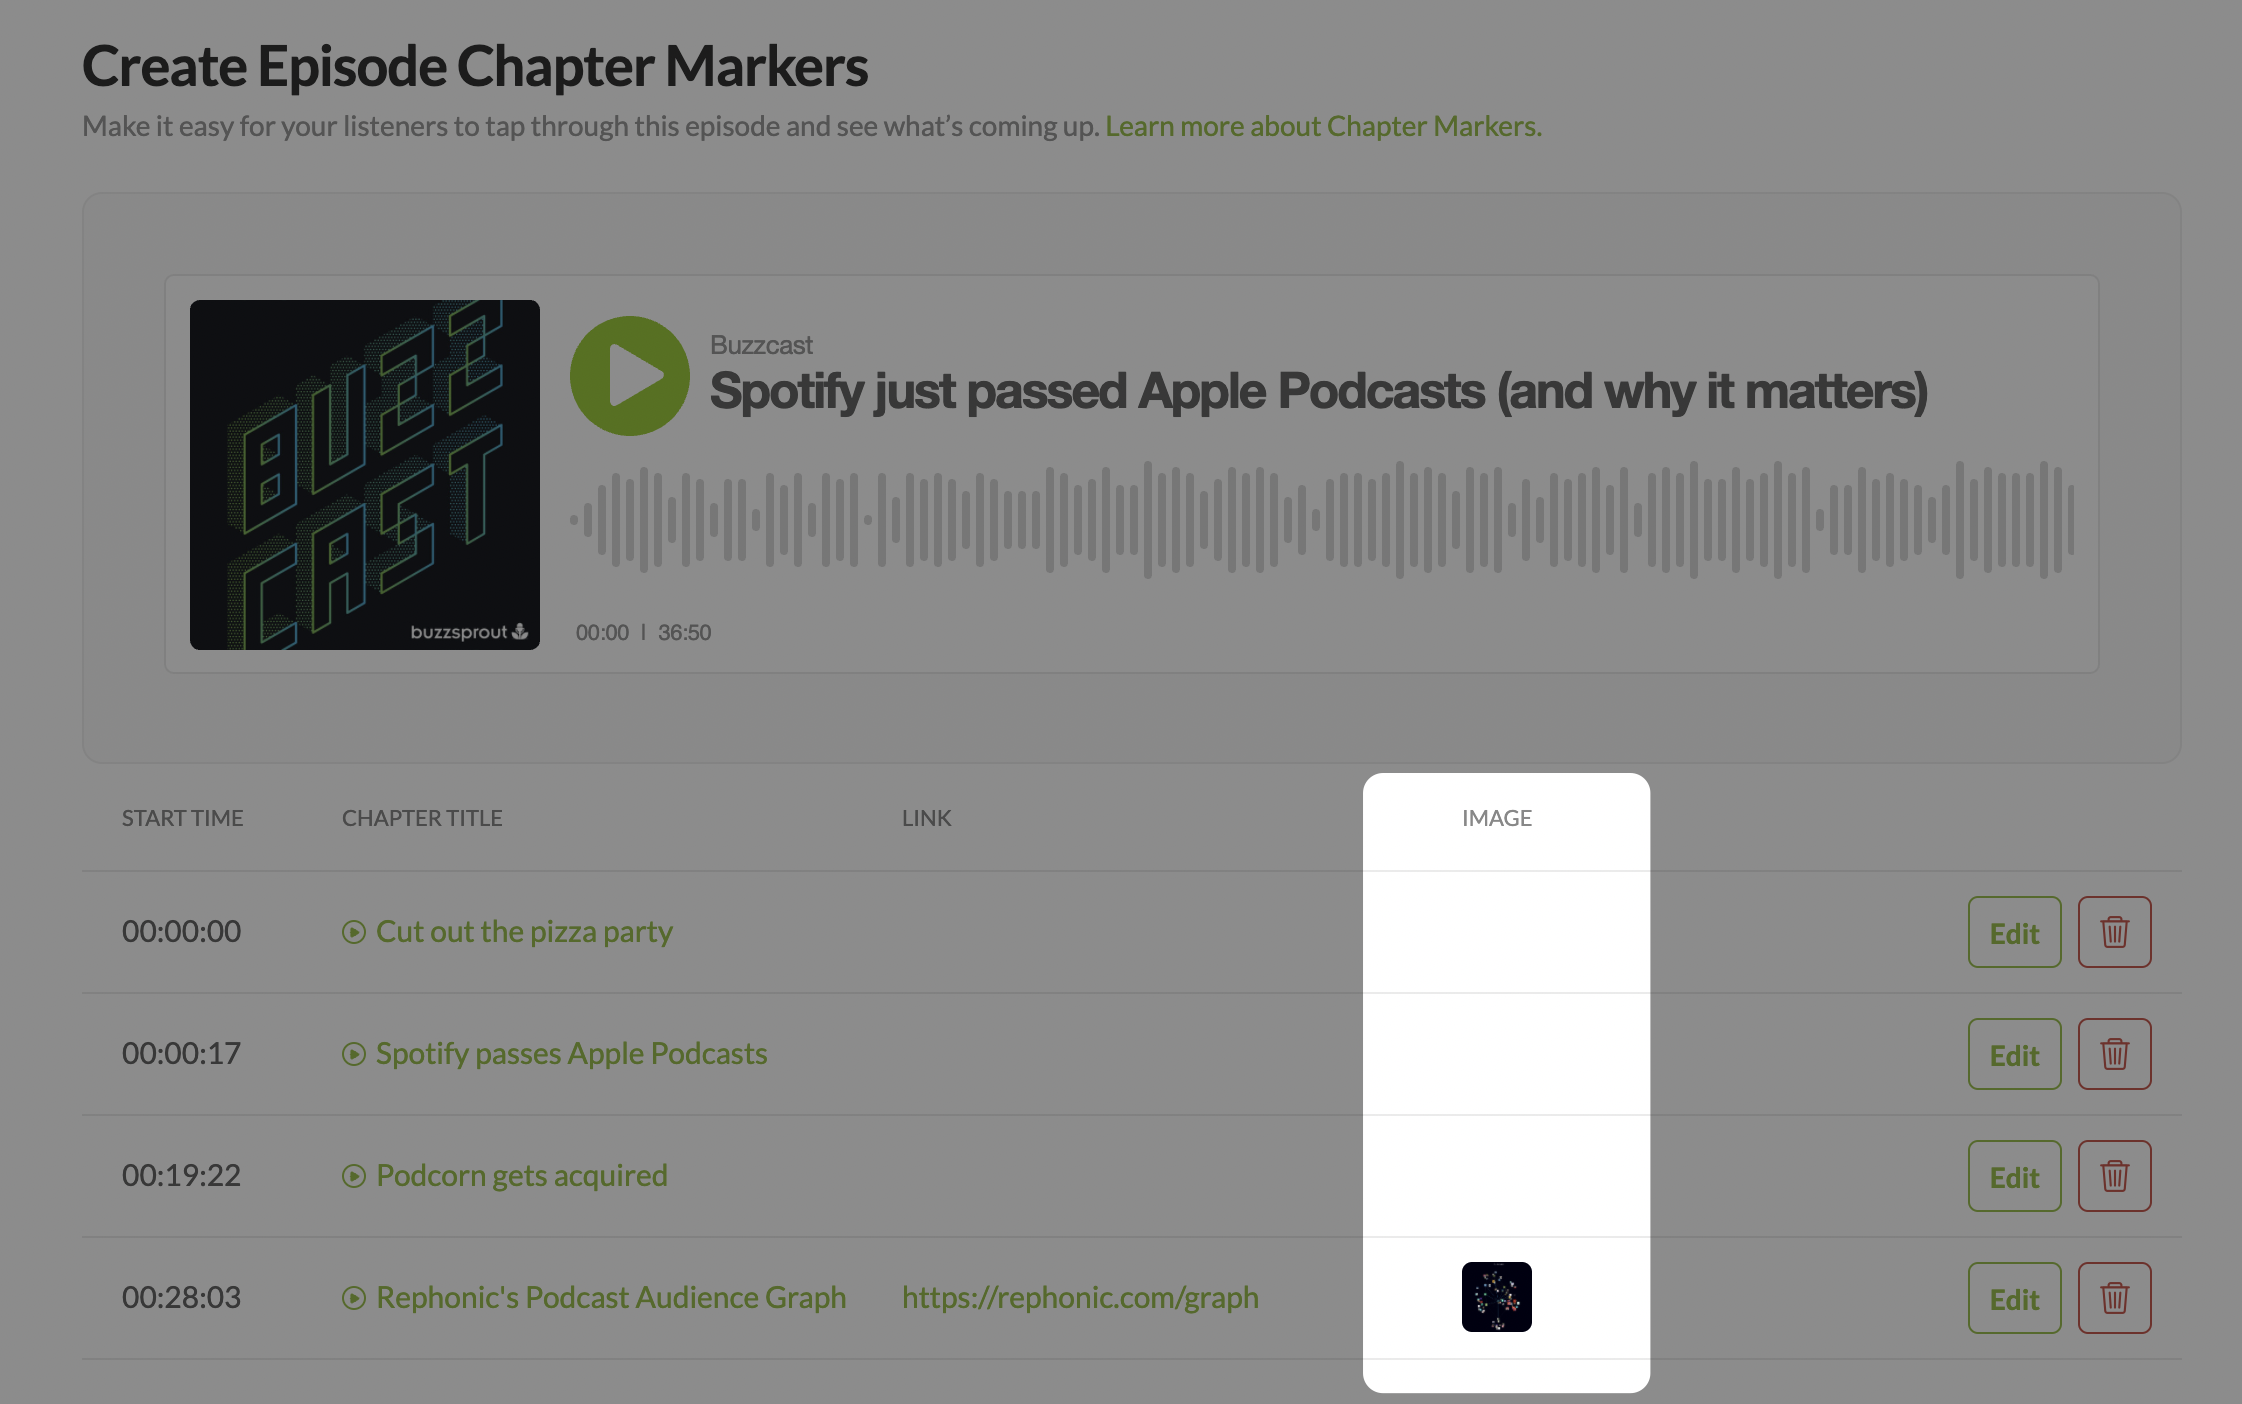 Adding images to podcast chapter marker